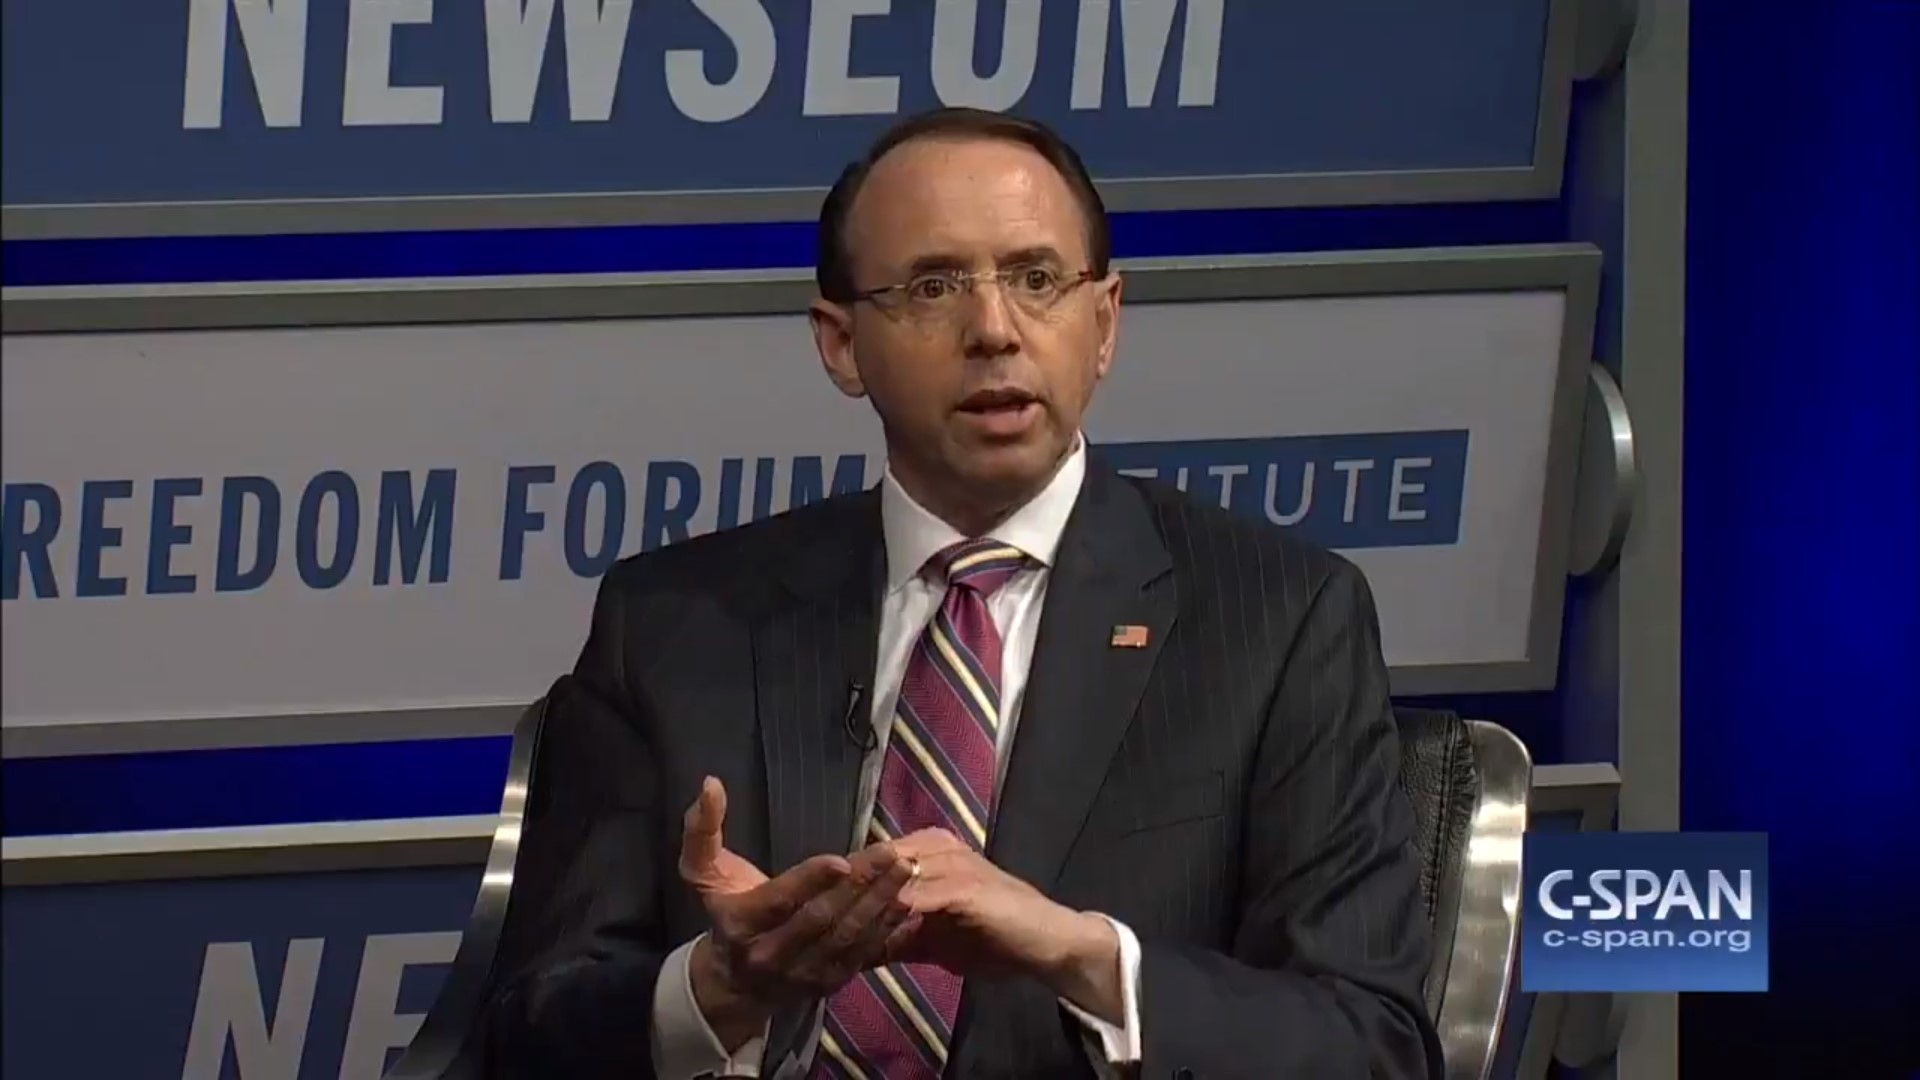 Rod Rosenstein Authorized Release of Texts Between FBI's Strzok and Page